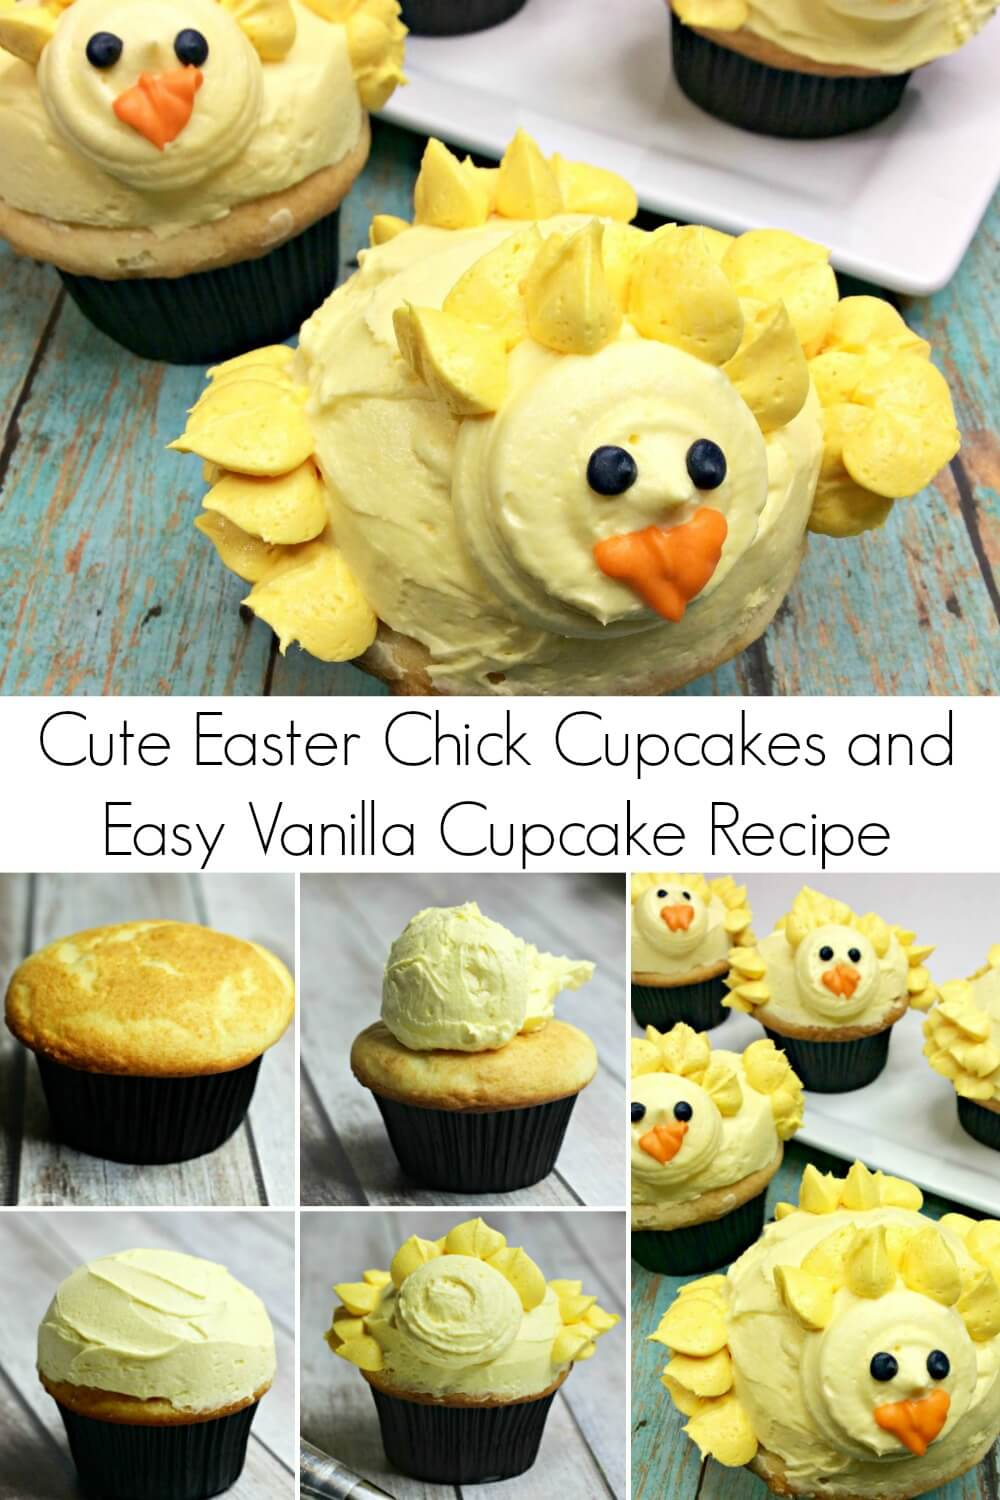 picture collage of chick cupcakes on top and picture directions on bottom with text Cute Easter Chick Cupcakes and Easy Vanilla Cupcake Recipe